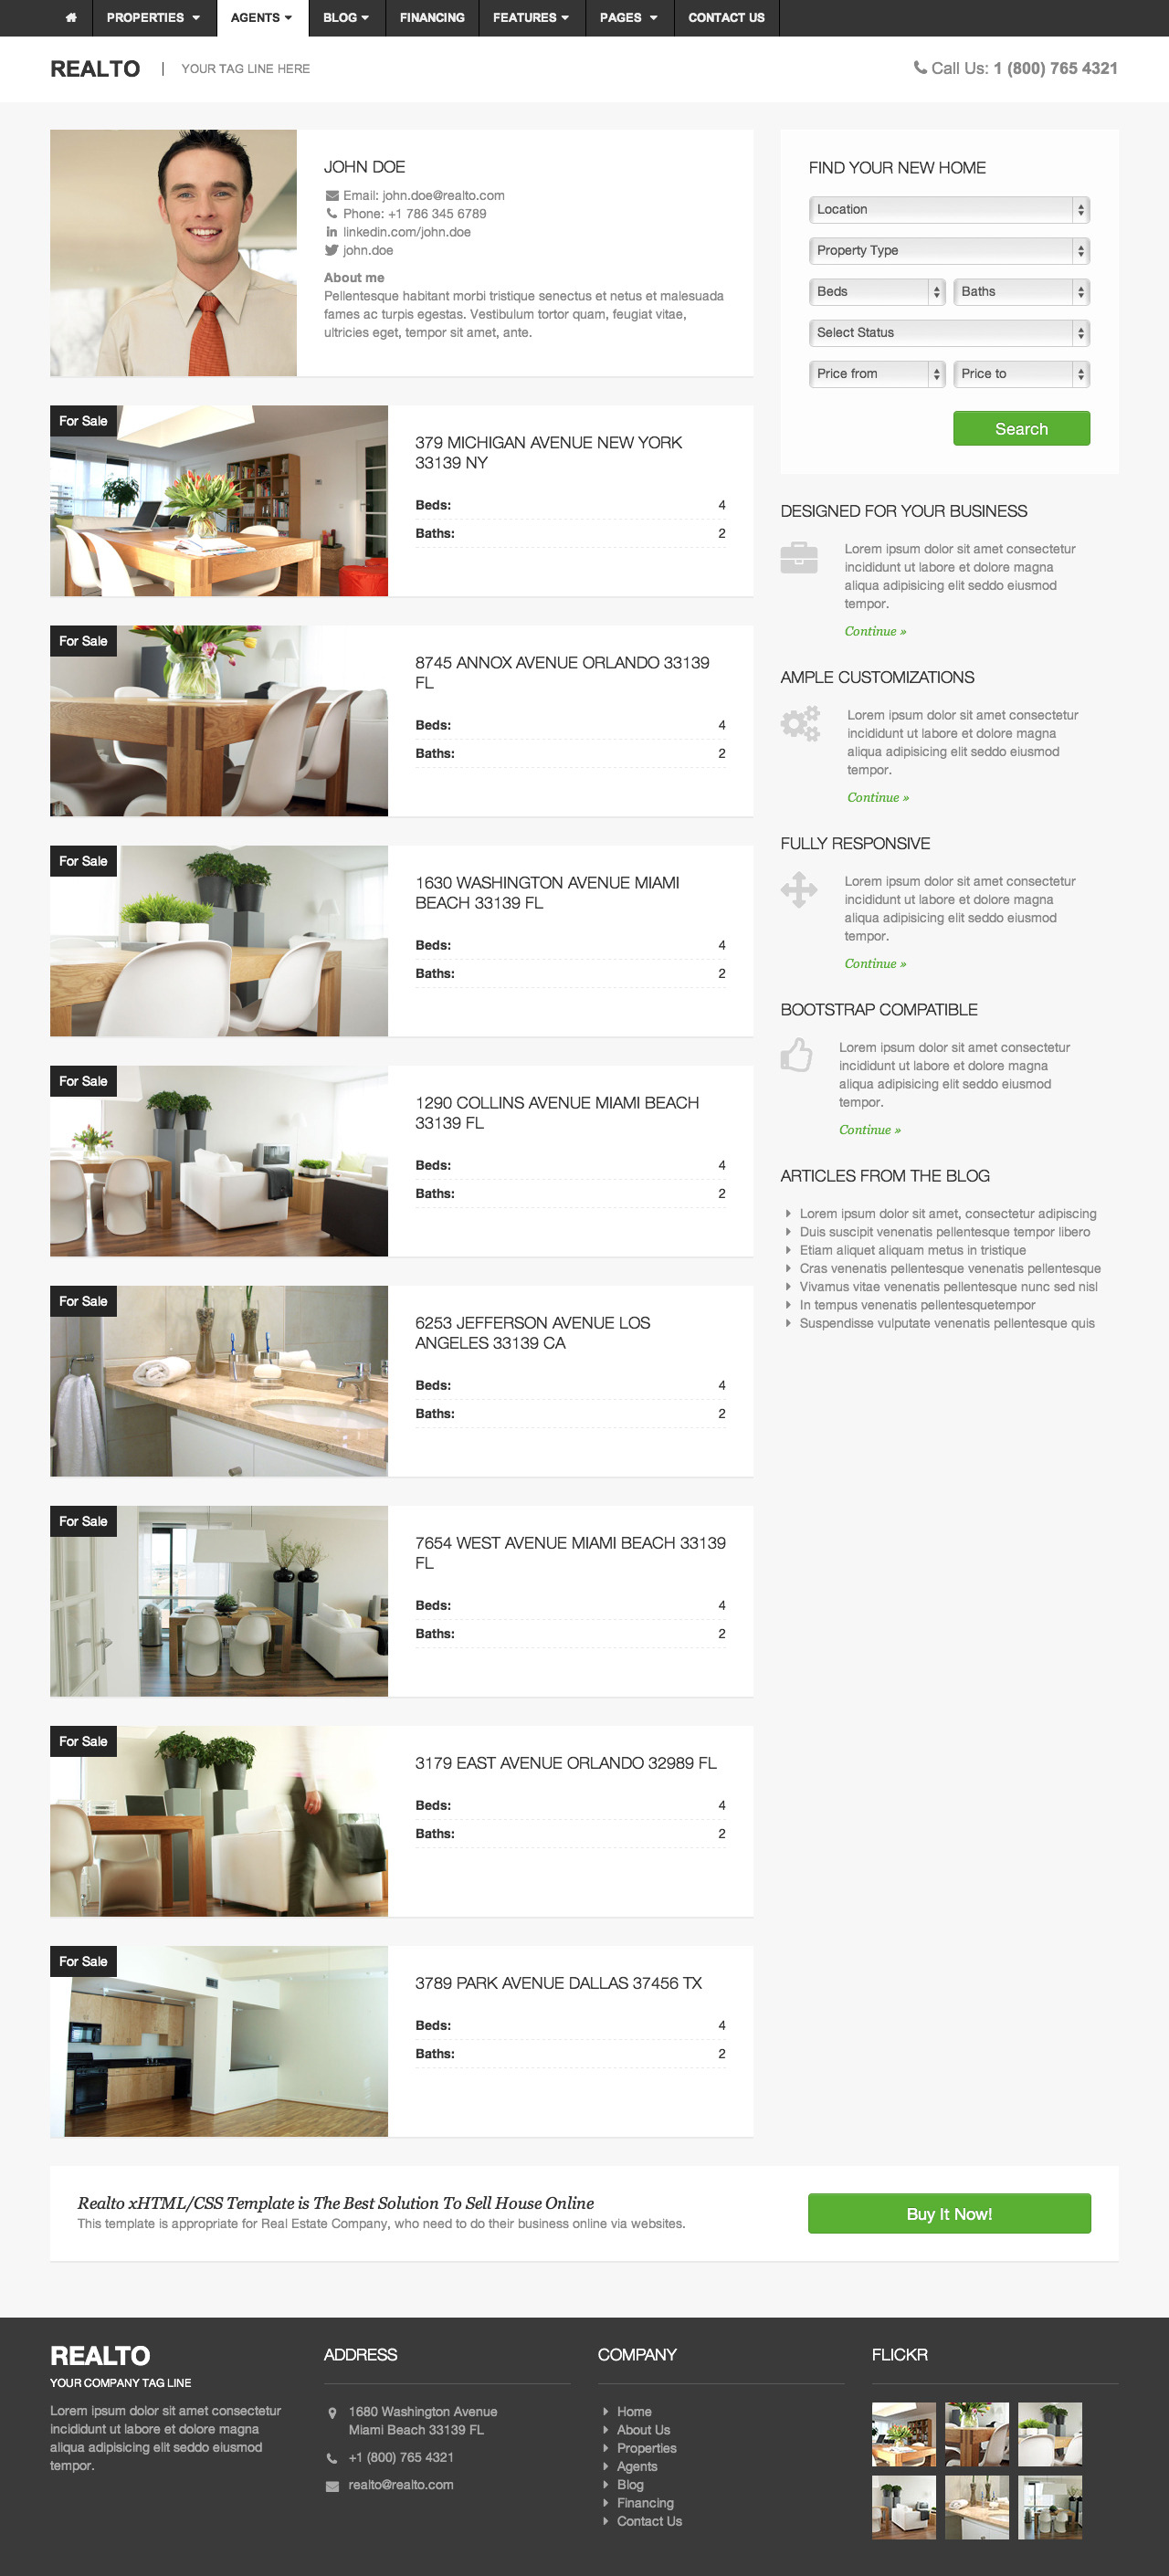 Realto - Real Estate Template - Bootstrap Based